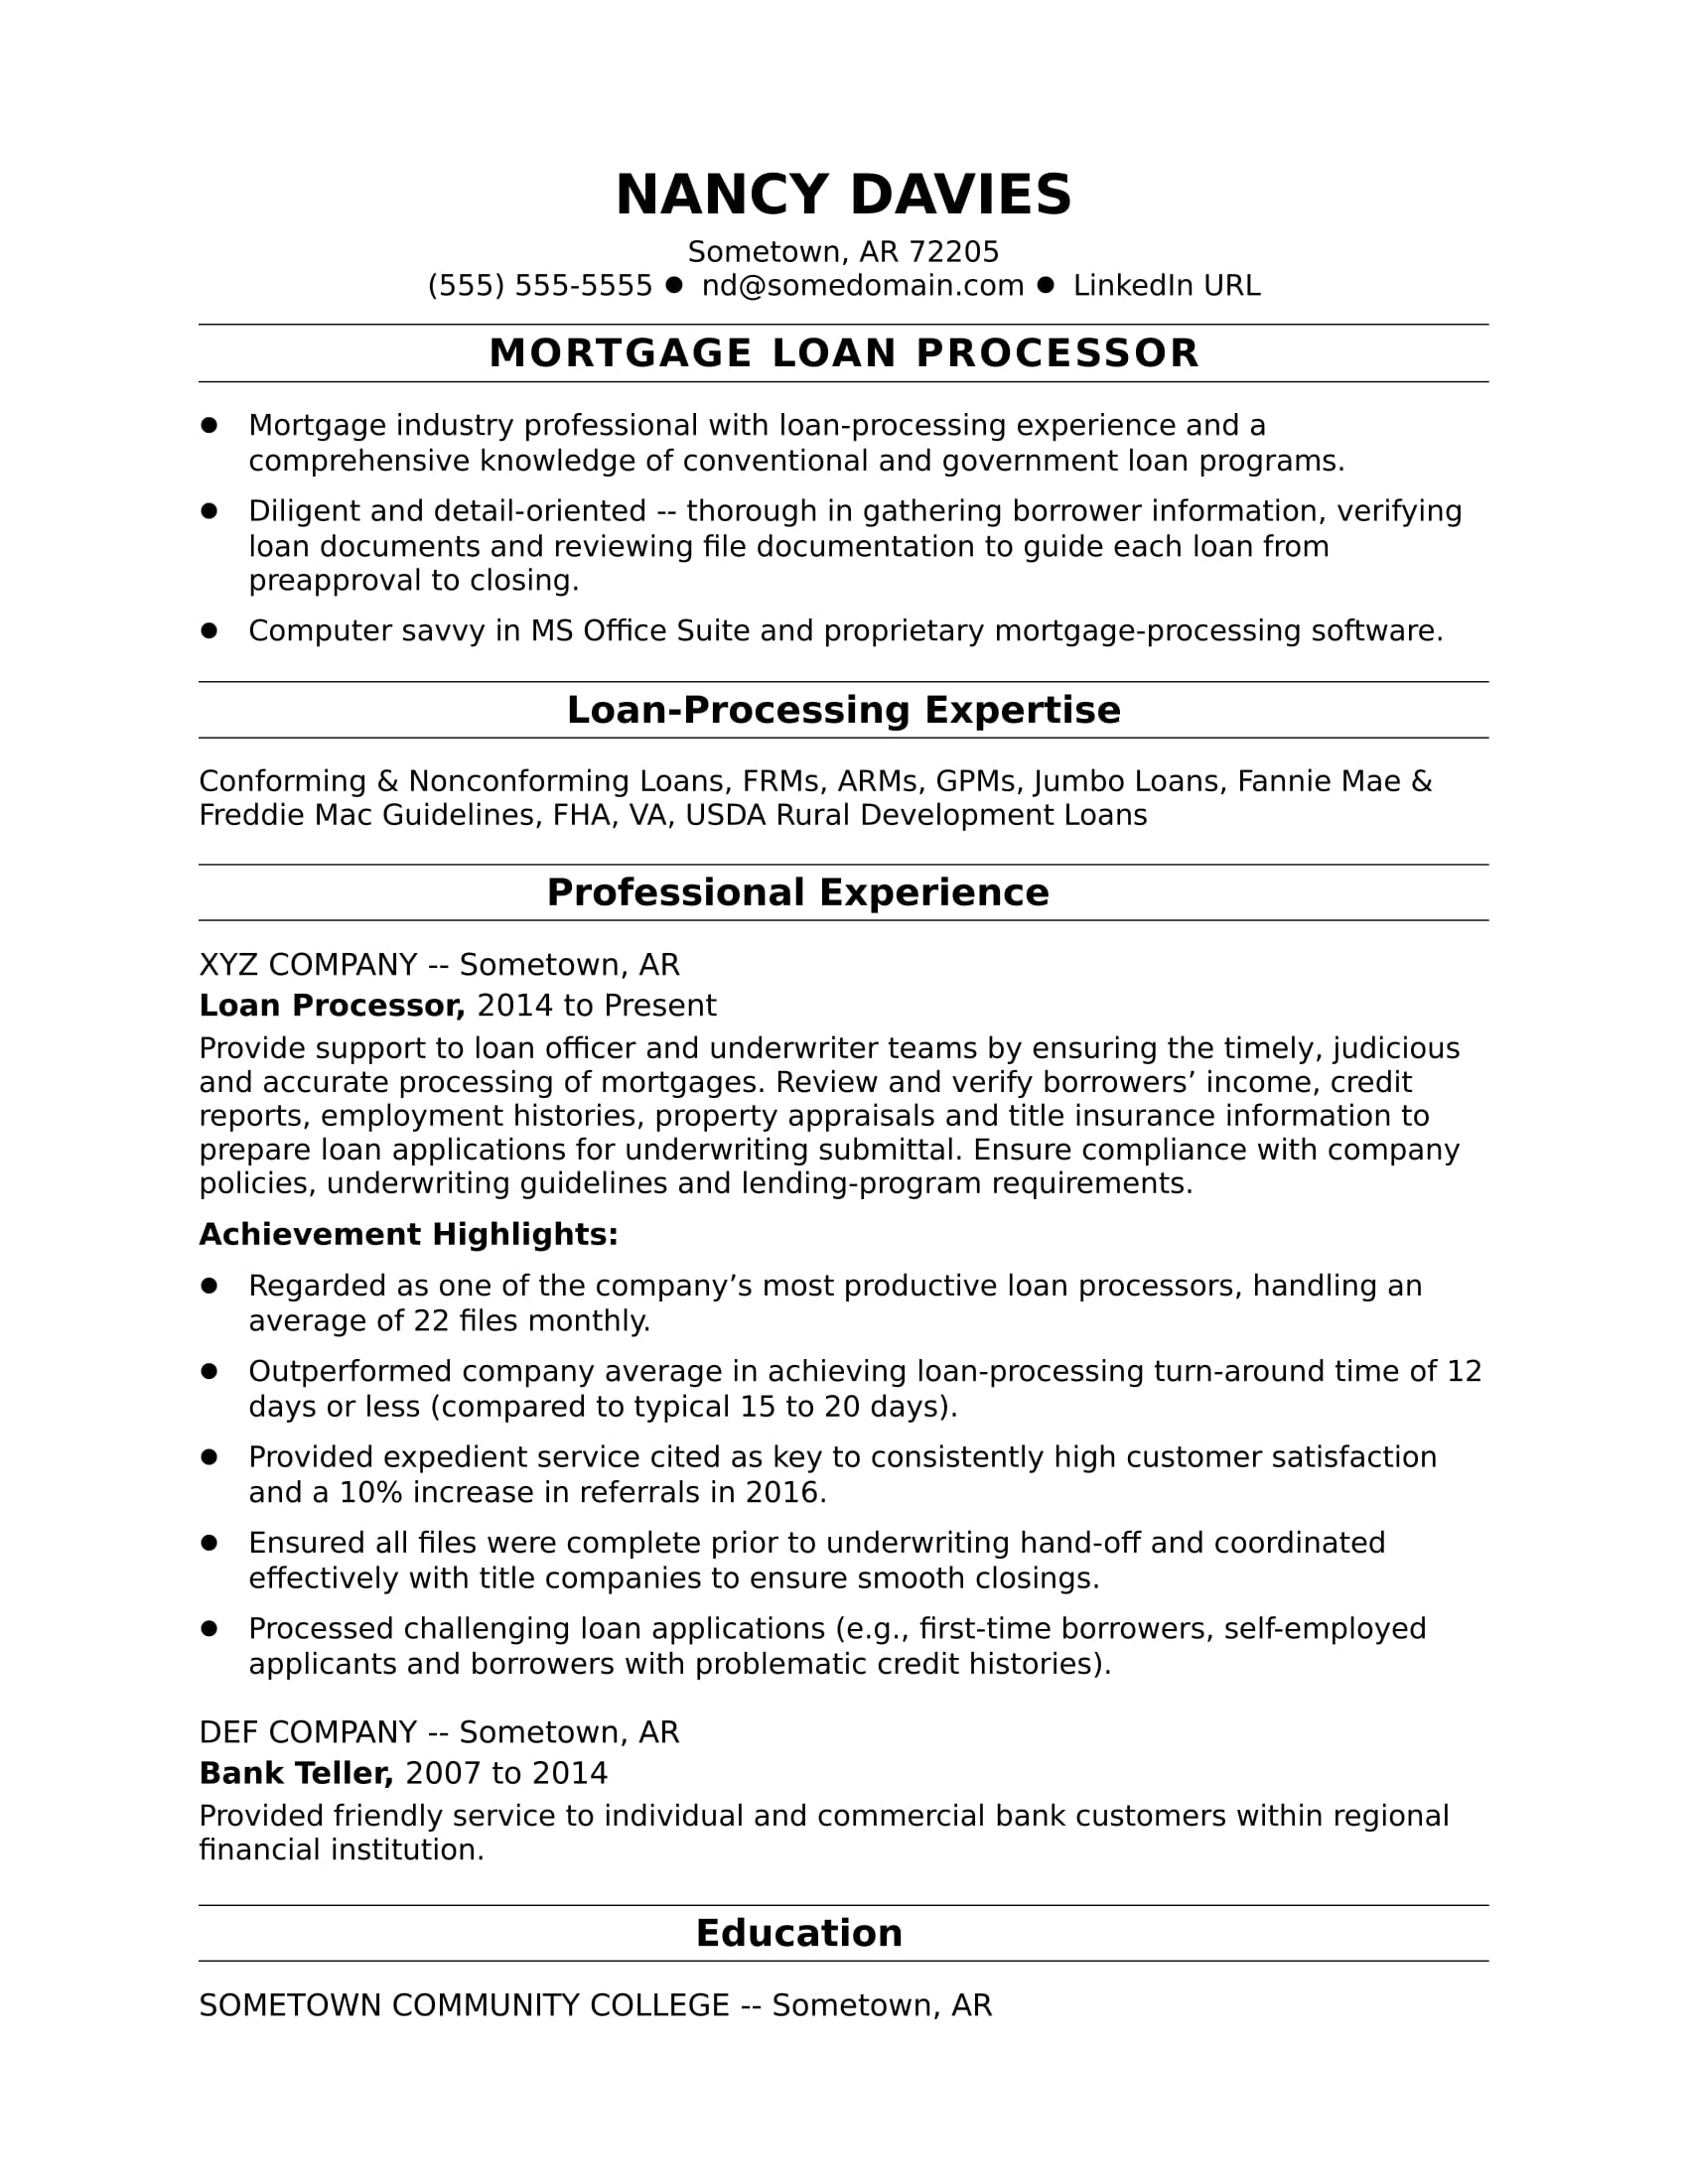 Mortgage Loan Processor Resume Sample